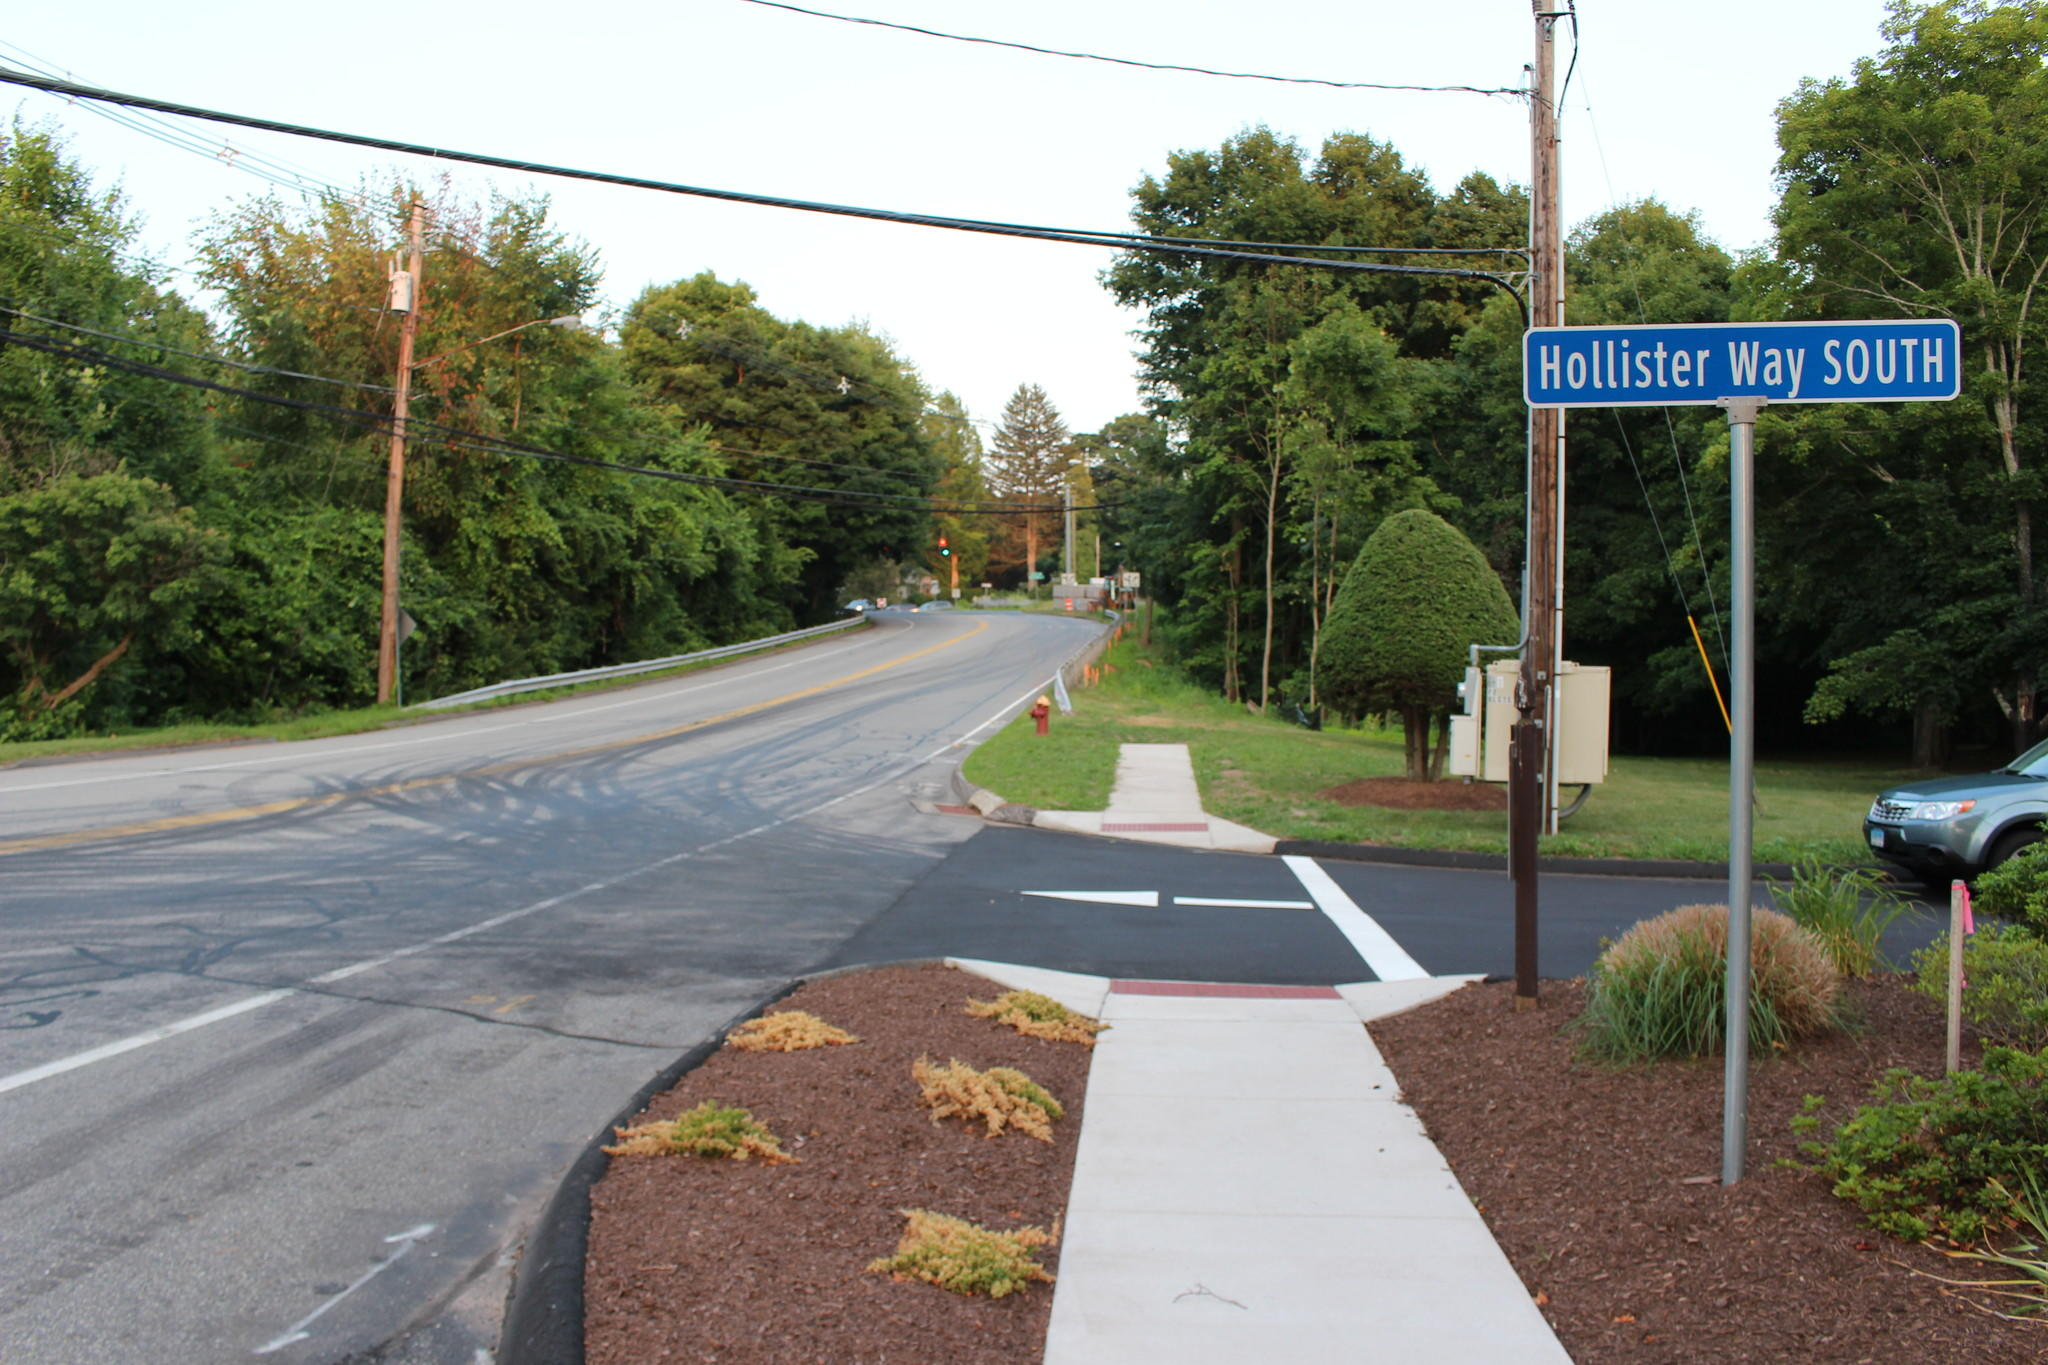 Another retaining wall and sidewalk will be built from Hollister Way South to Route 17.